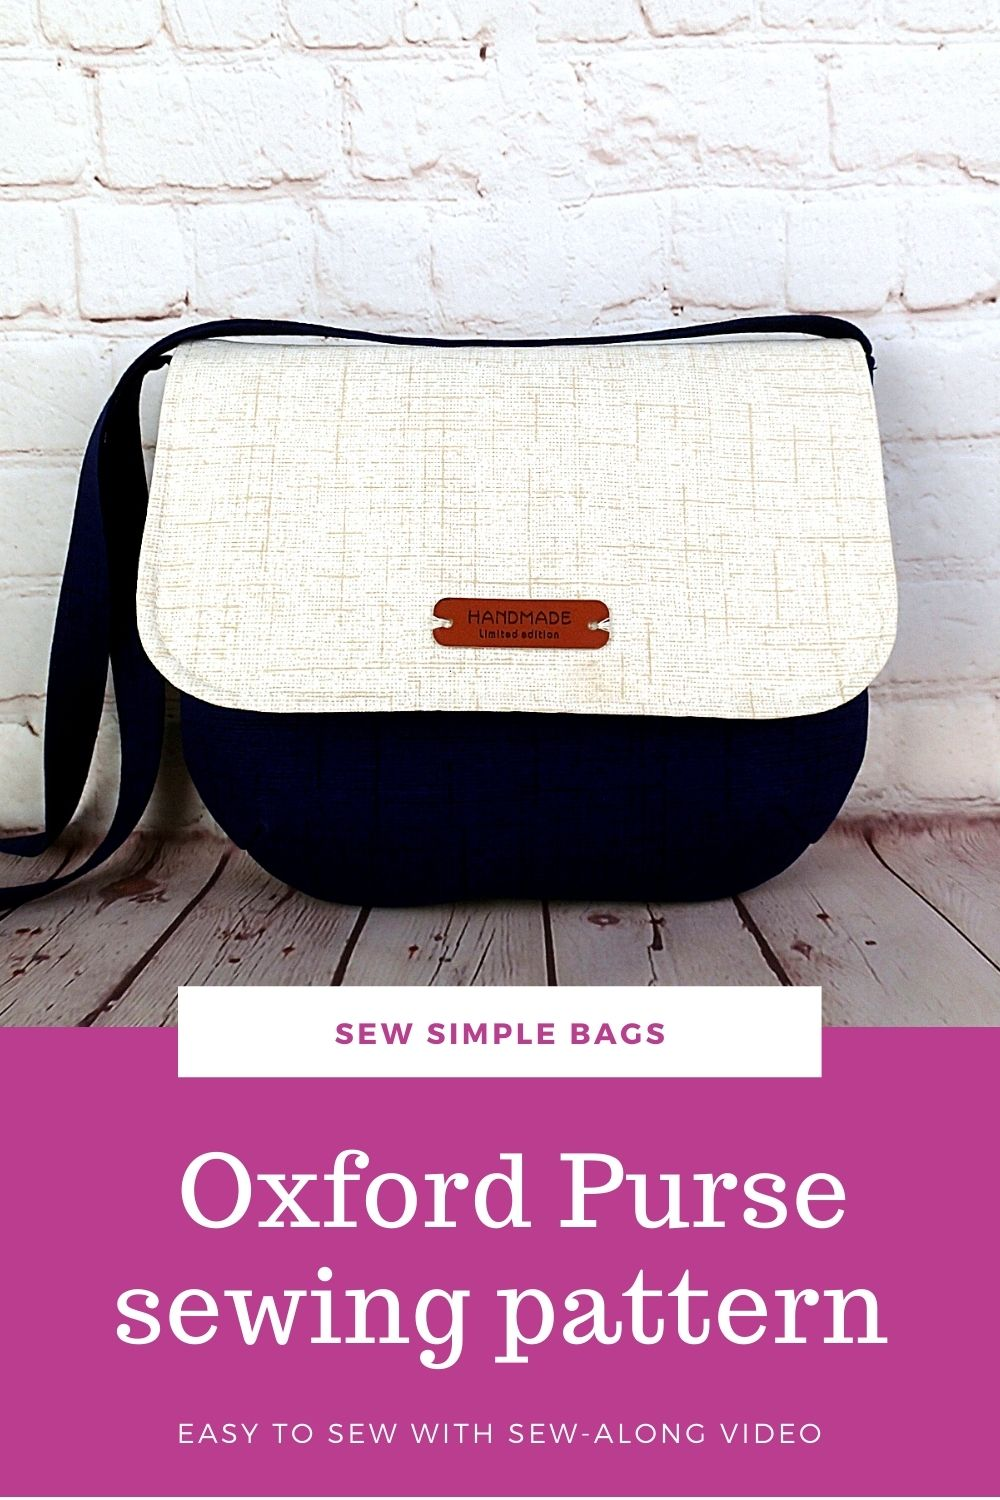 Oxford purse sewing pattern, easy bag to sew for beginners